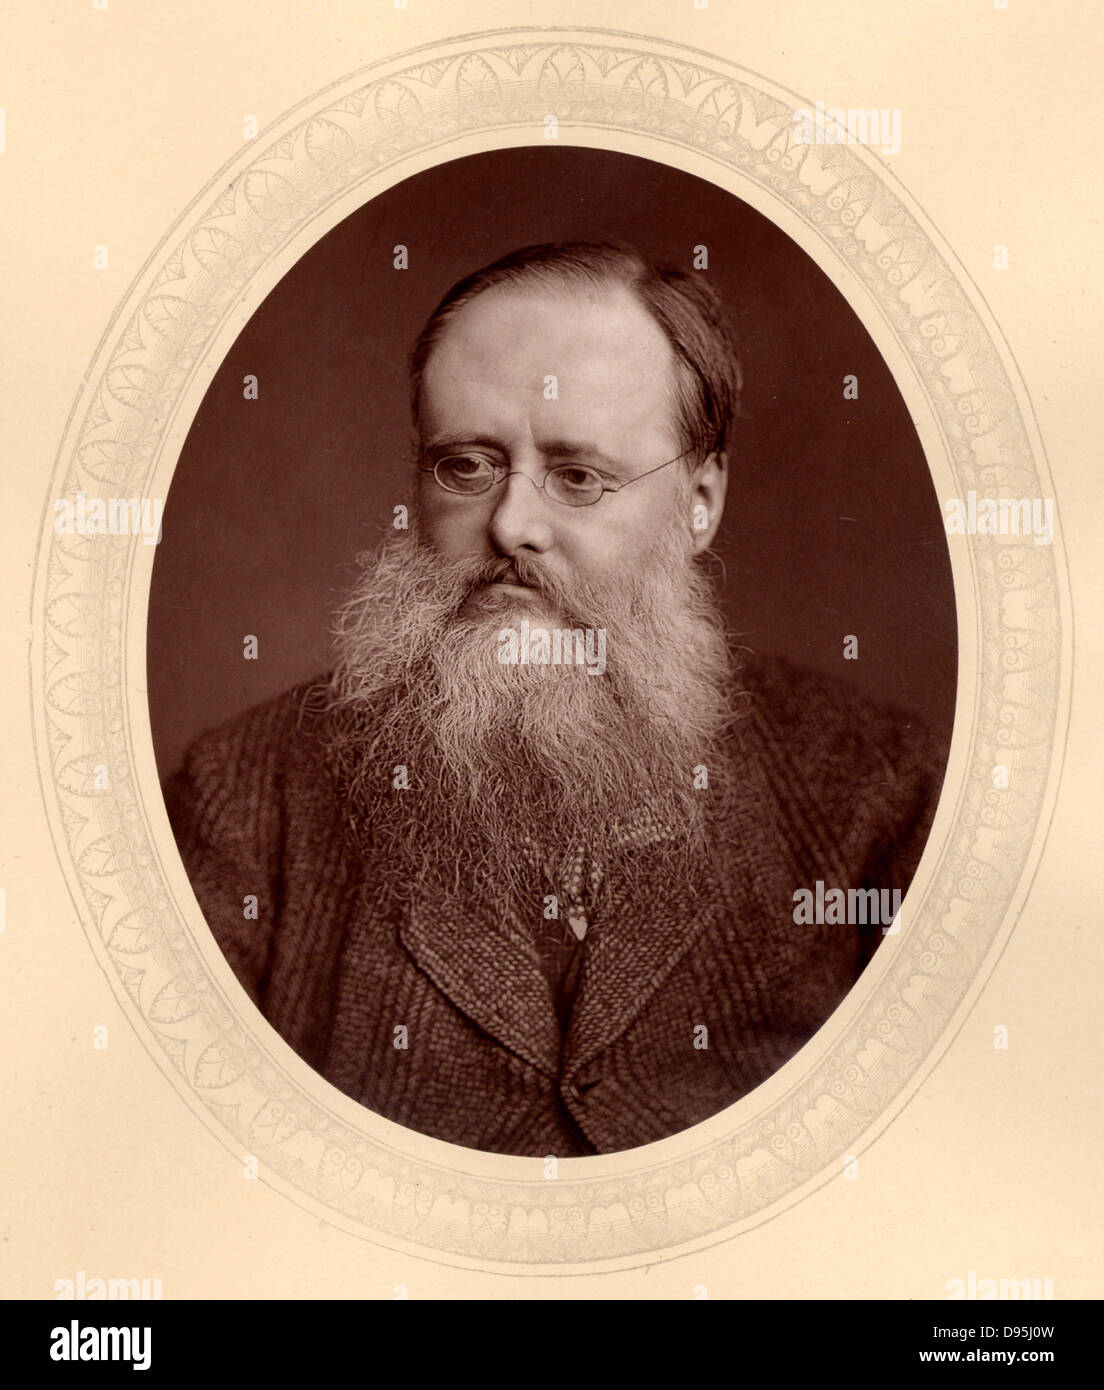 (William) Wilkie Collins (1824-1889), English novelist. Author of sensation novels of mystery and suspense including - Stock Image